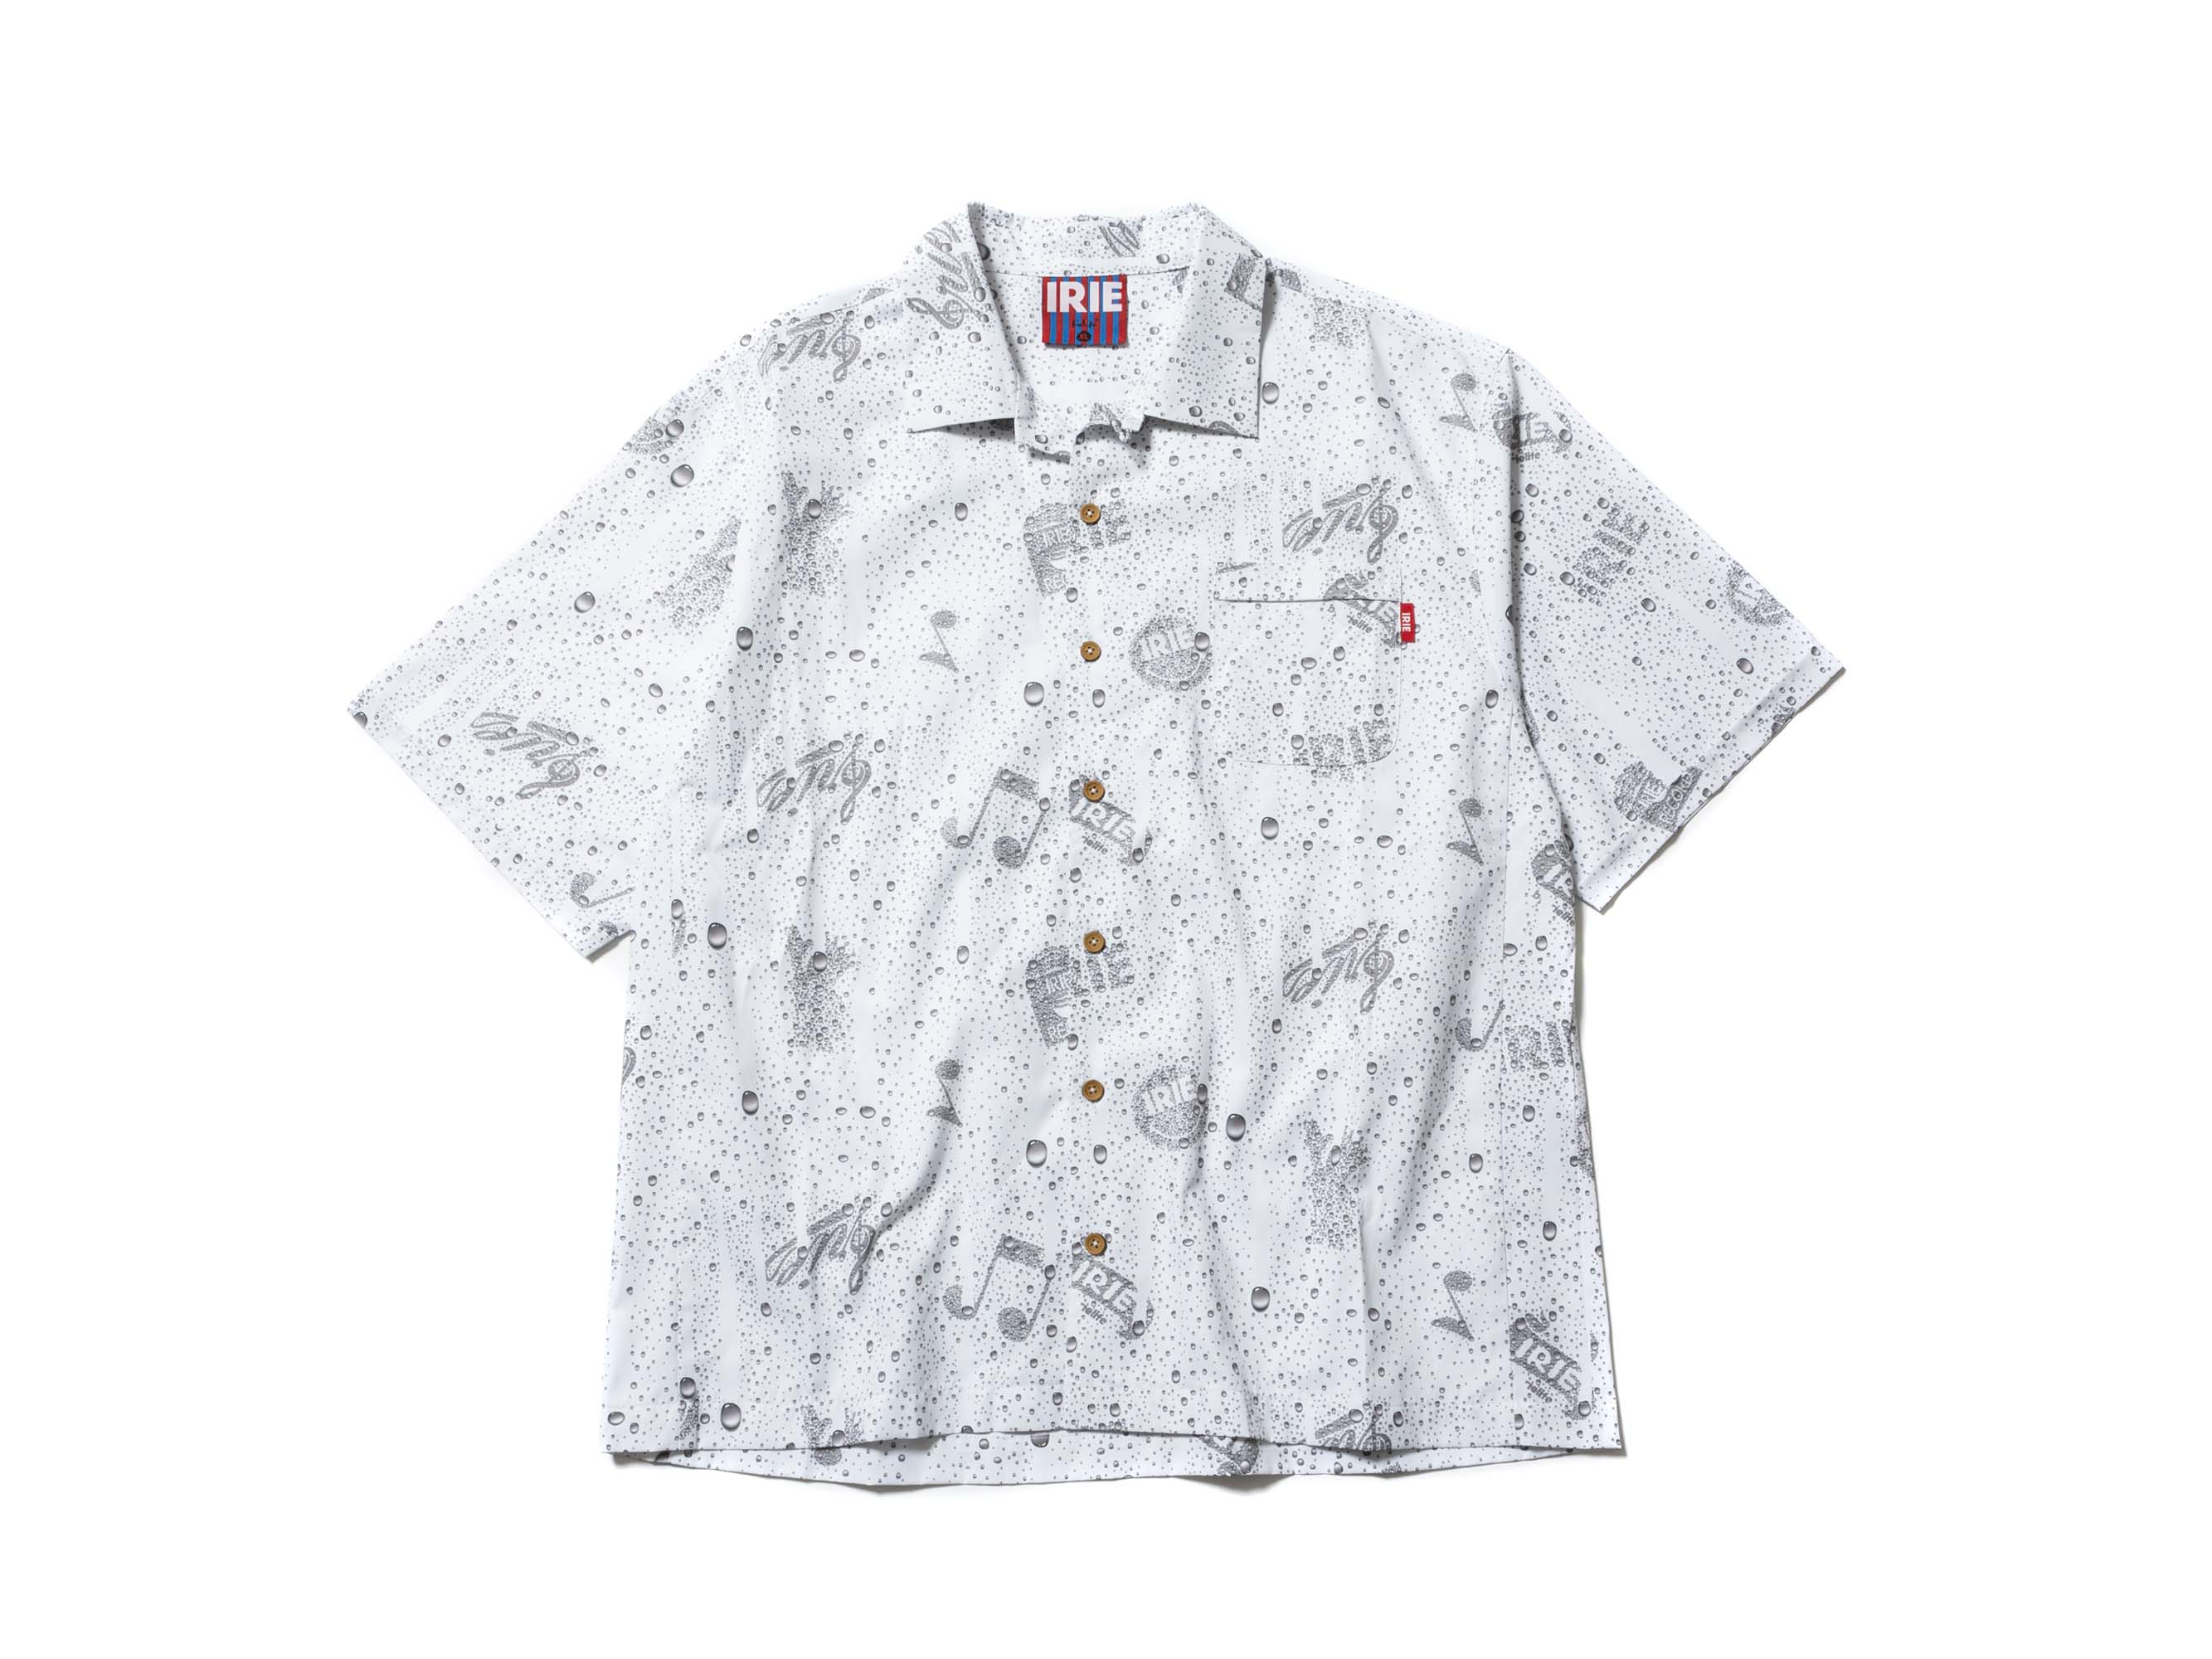 IRIE SPLASH S/S SHIRT - IRIE by irielife